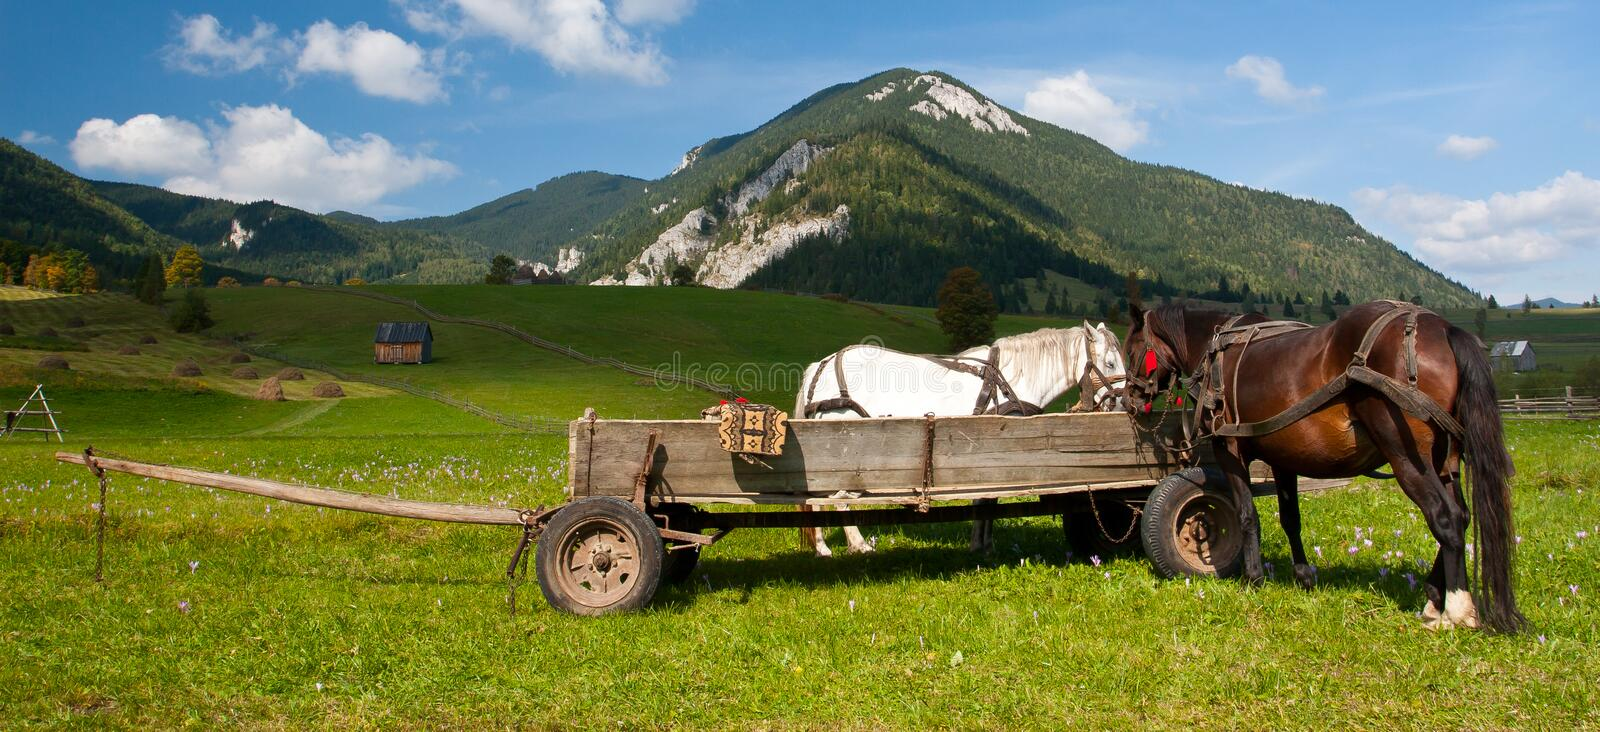 Download Horses and Carriage stock image. Image of carriage, forest - 17095705